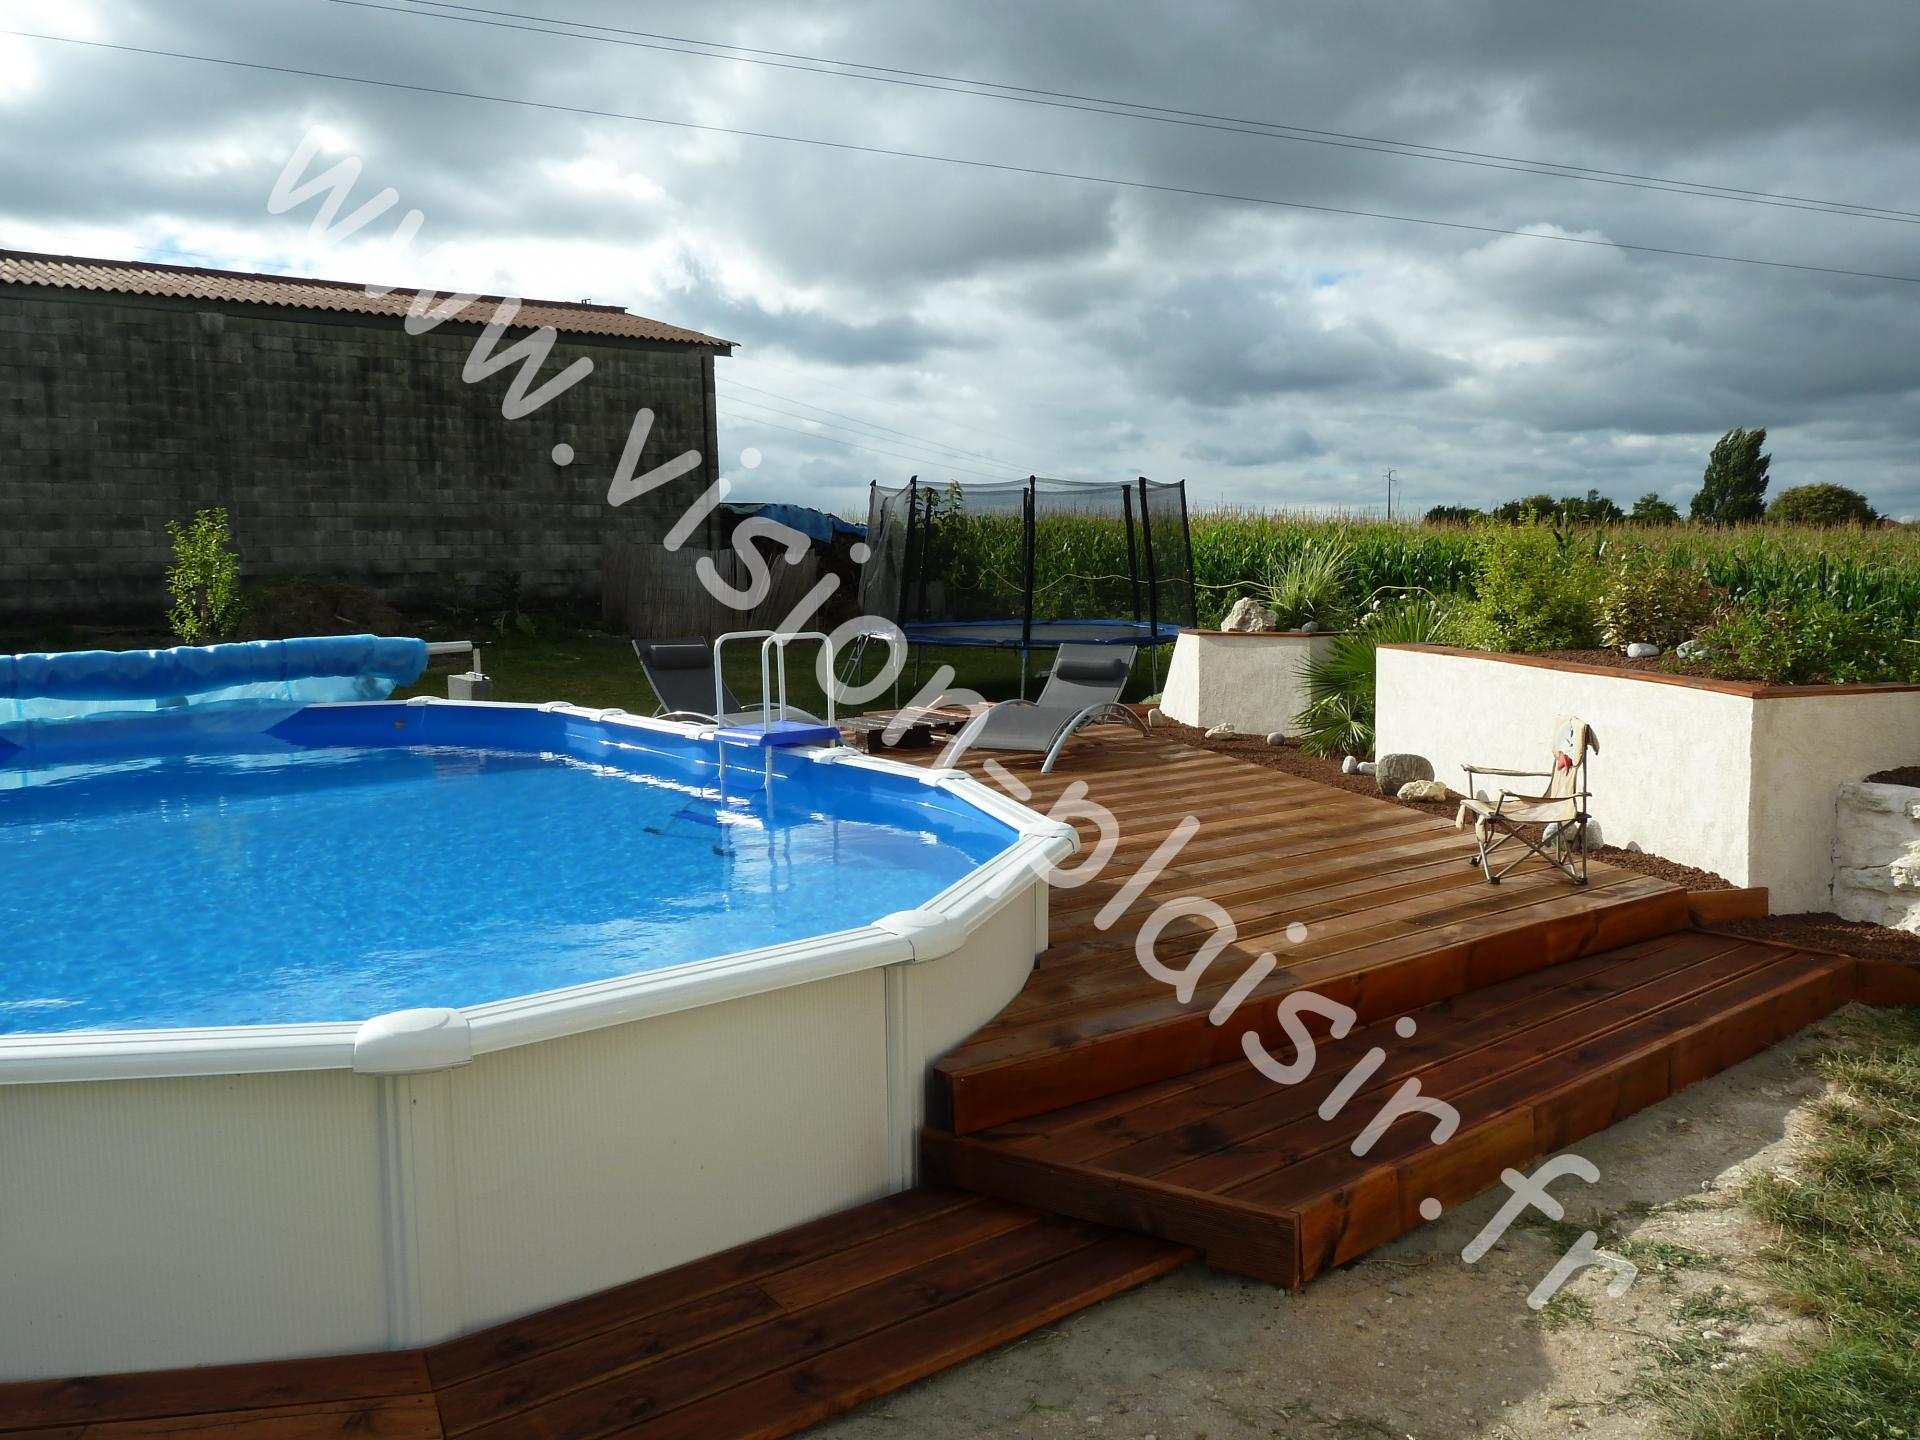 Blog de vision plaisir piscine hors sol semi enterr e for Kit piscine bois semi enterree